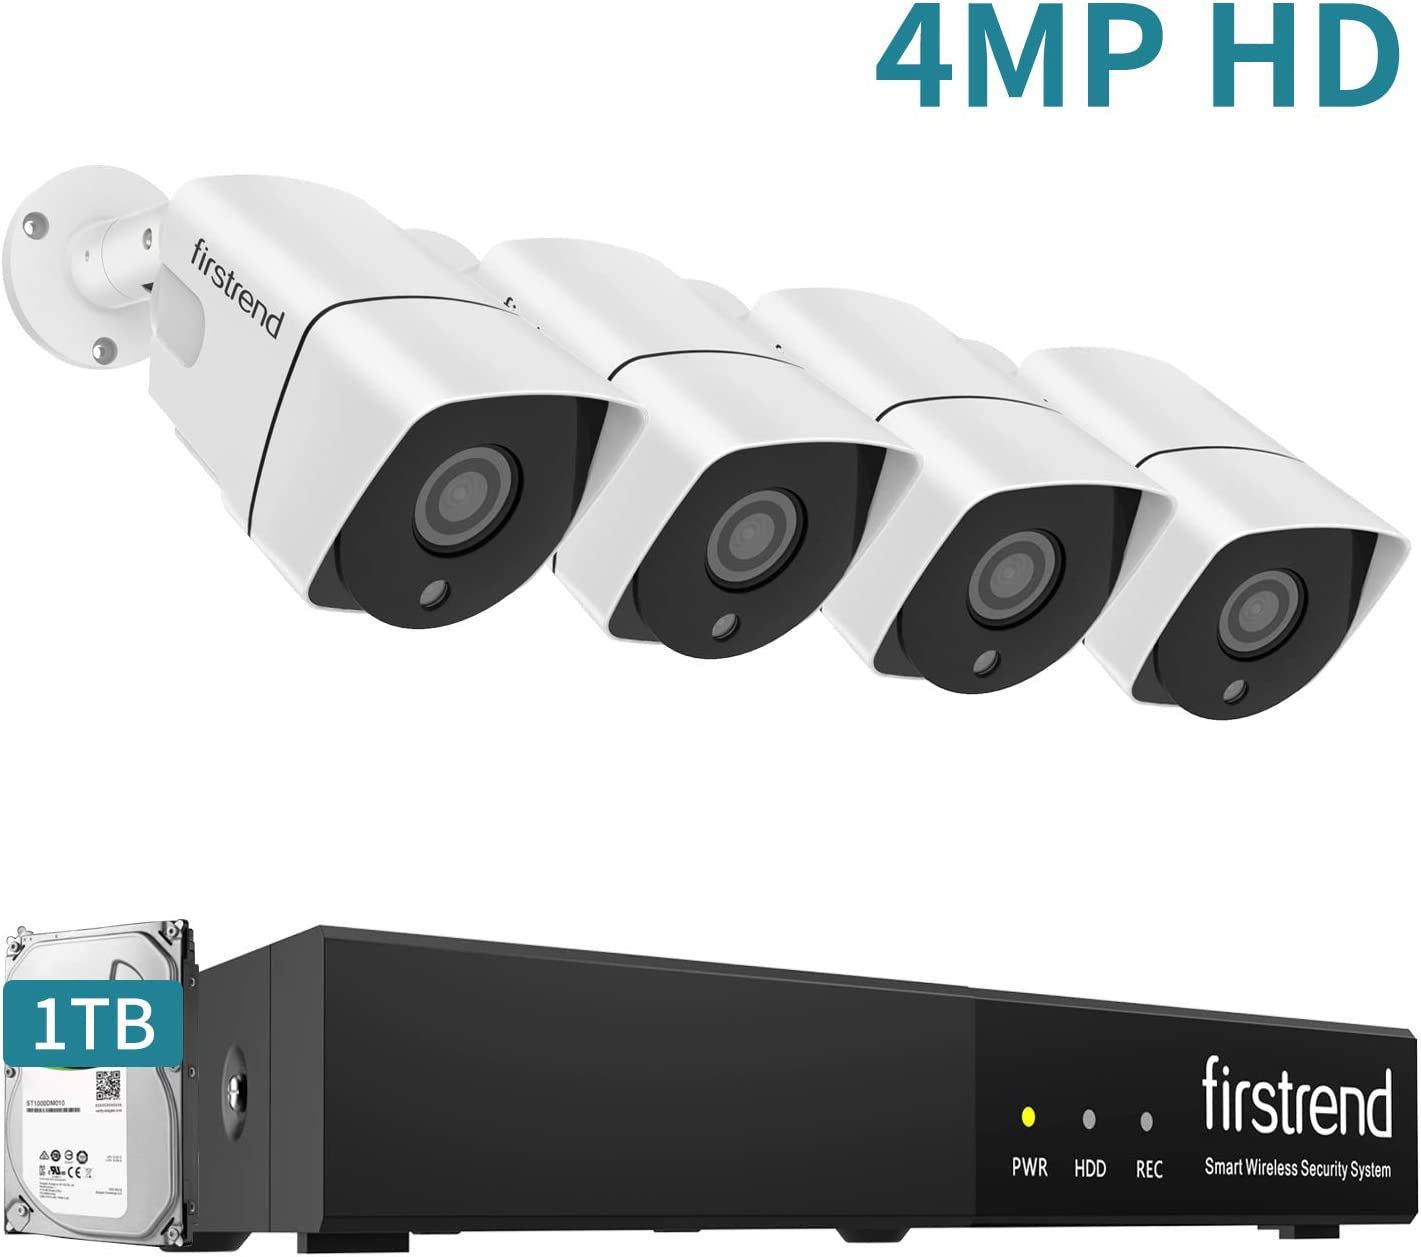 PoE Security Camera System,Firstrend 5MP 8CH NVR with 1TB Hard Drive and 4PCS 4MP P2P Indoor Outdoor Video Camera System 65FT Night Vision Free APP